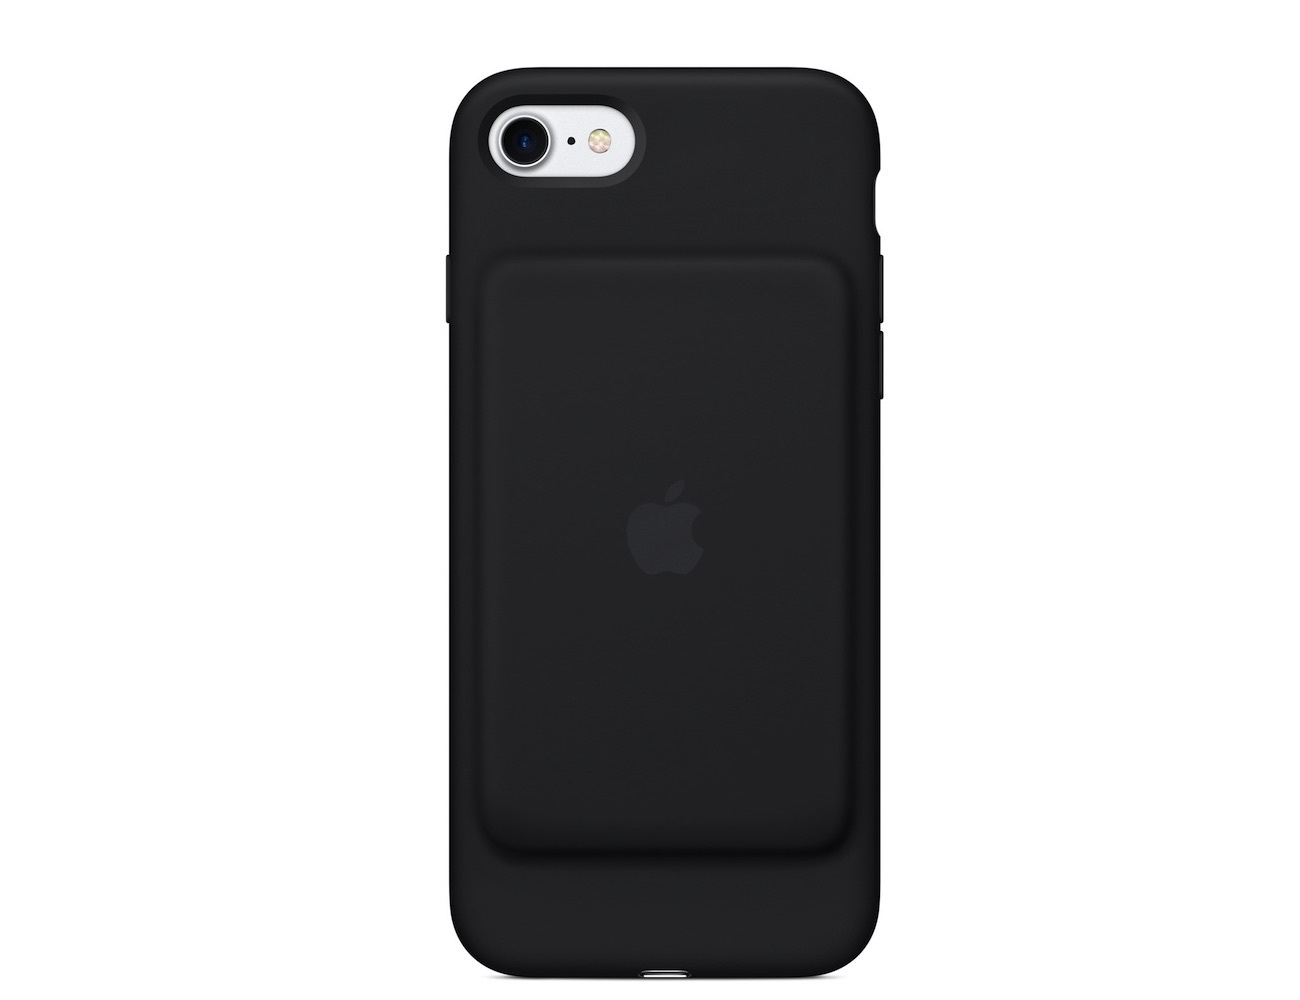 Official iPhone 7 Smart Battery Case